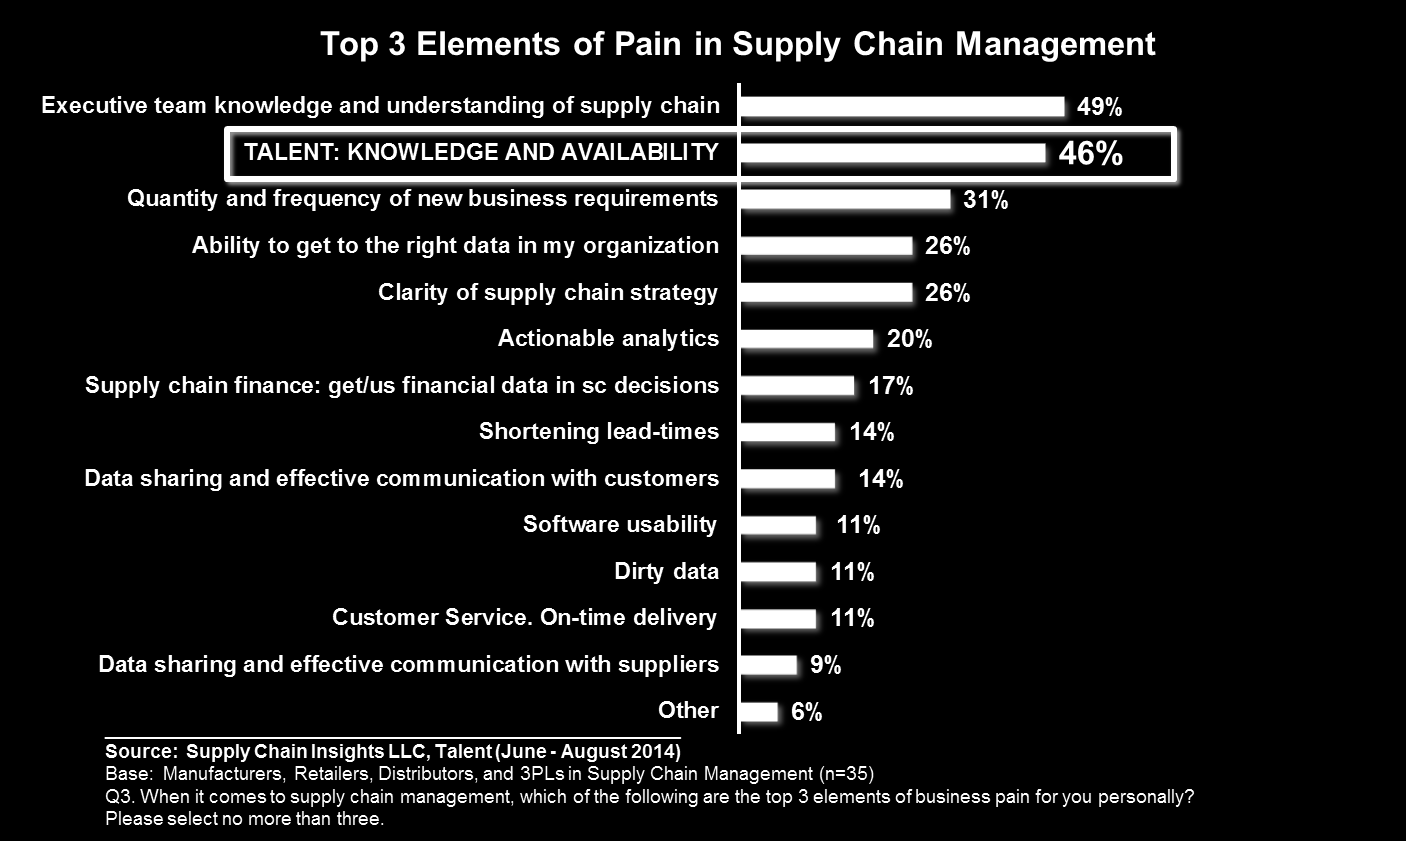 supply. Companies are competing for supply chain talent. Those that have well-defined supply chain talent strategies and aligned/supportive management have the best shot at getting the best talent.